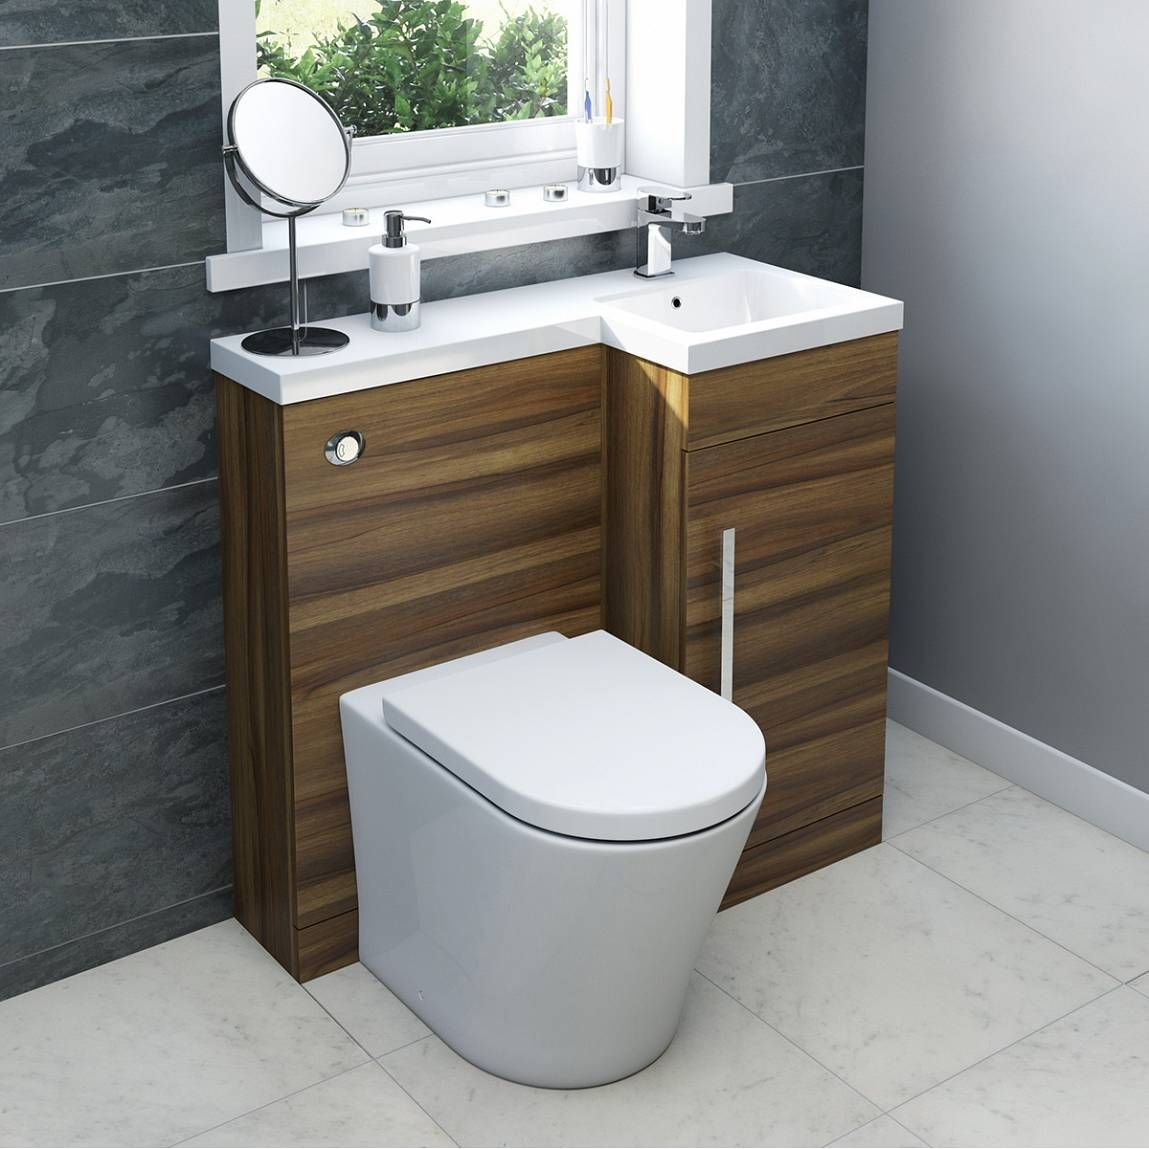 Myspace Walnut Right Handed Unit With Arte Back To Wall Toilet Small Bathroom Styles Small Bathroom Sinks Small Bathroom Solutions [ 1149 x 1149 Pixel ]